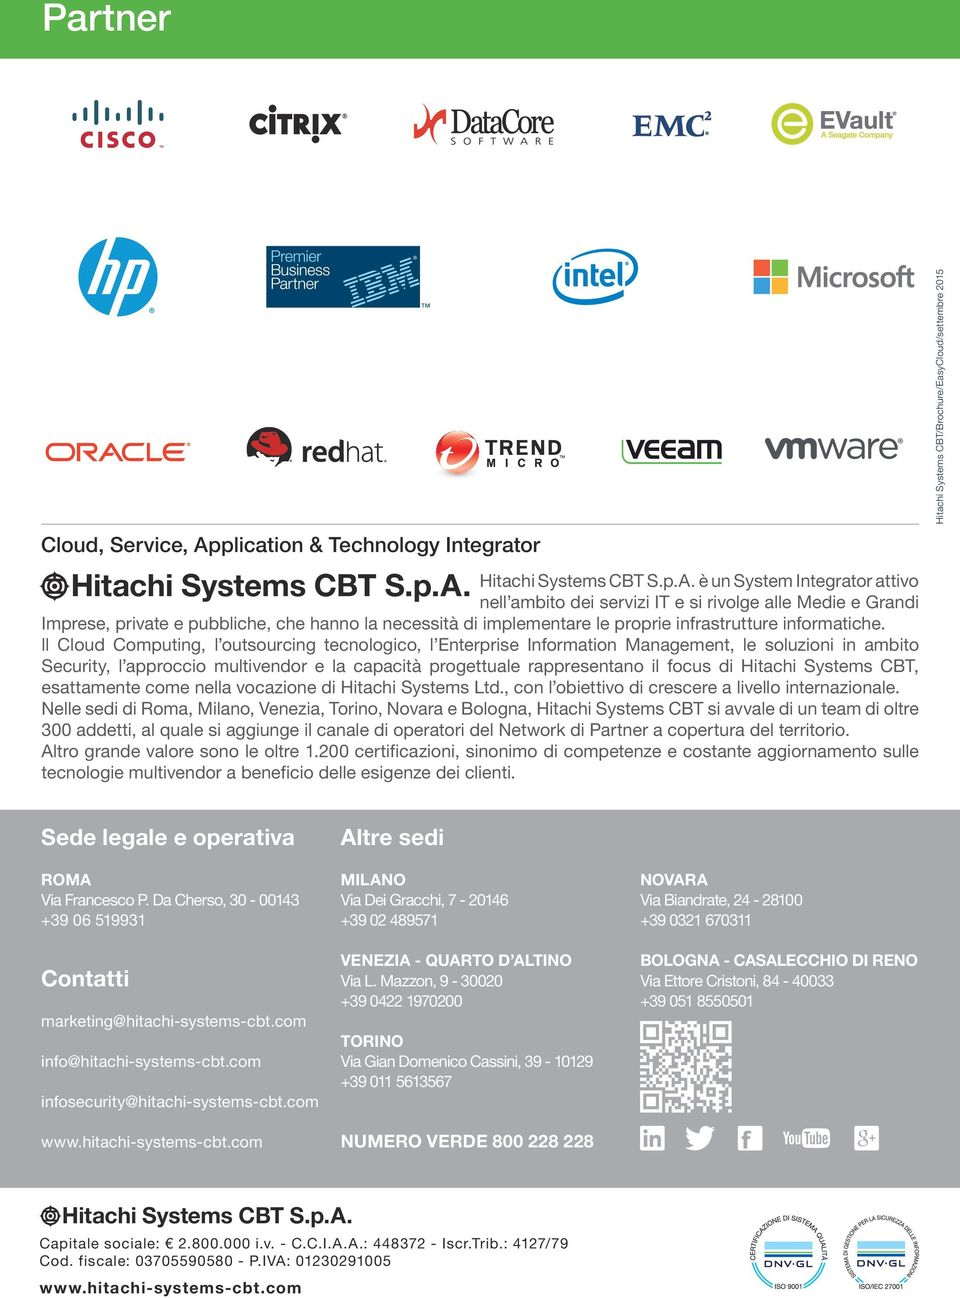 Hitachi Systems CBT S.p.A.